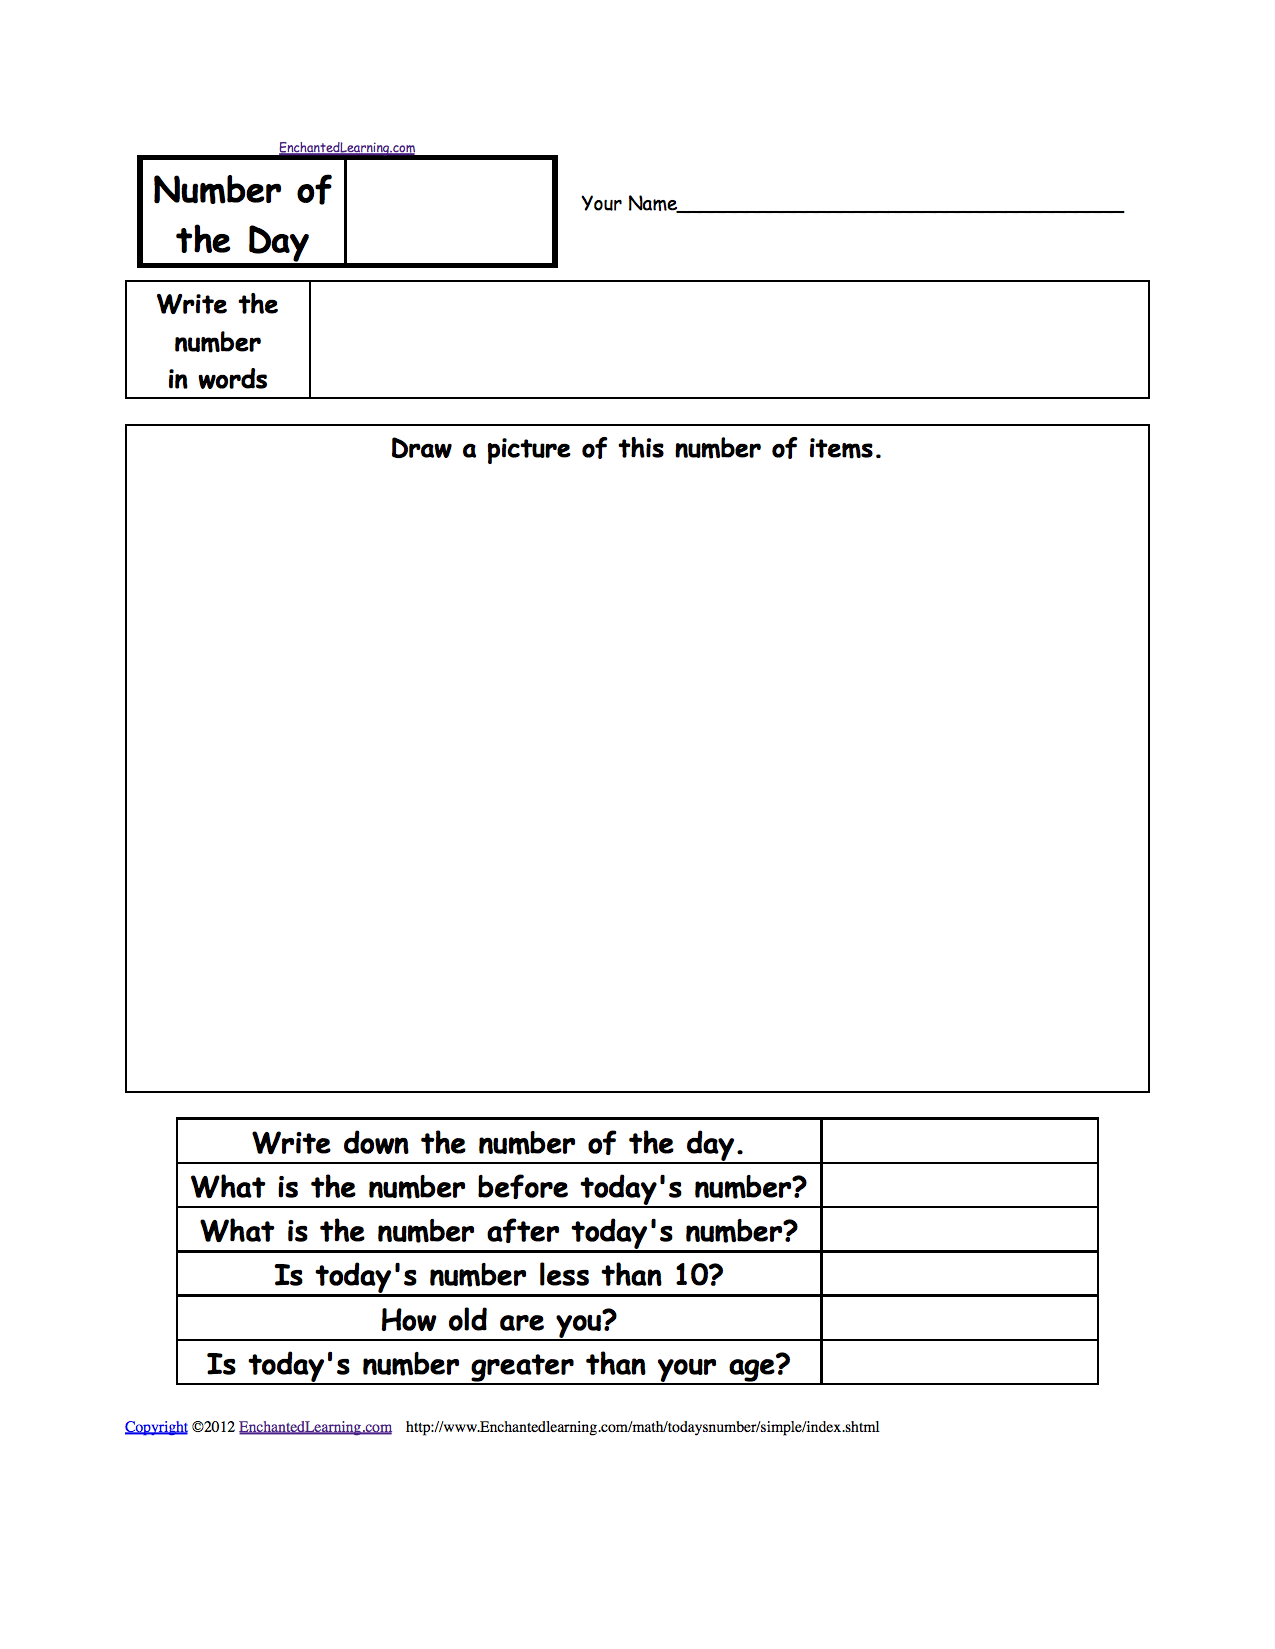 Number of the Day, A Printable Worksheet  EnchantedLearning com